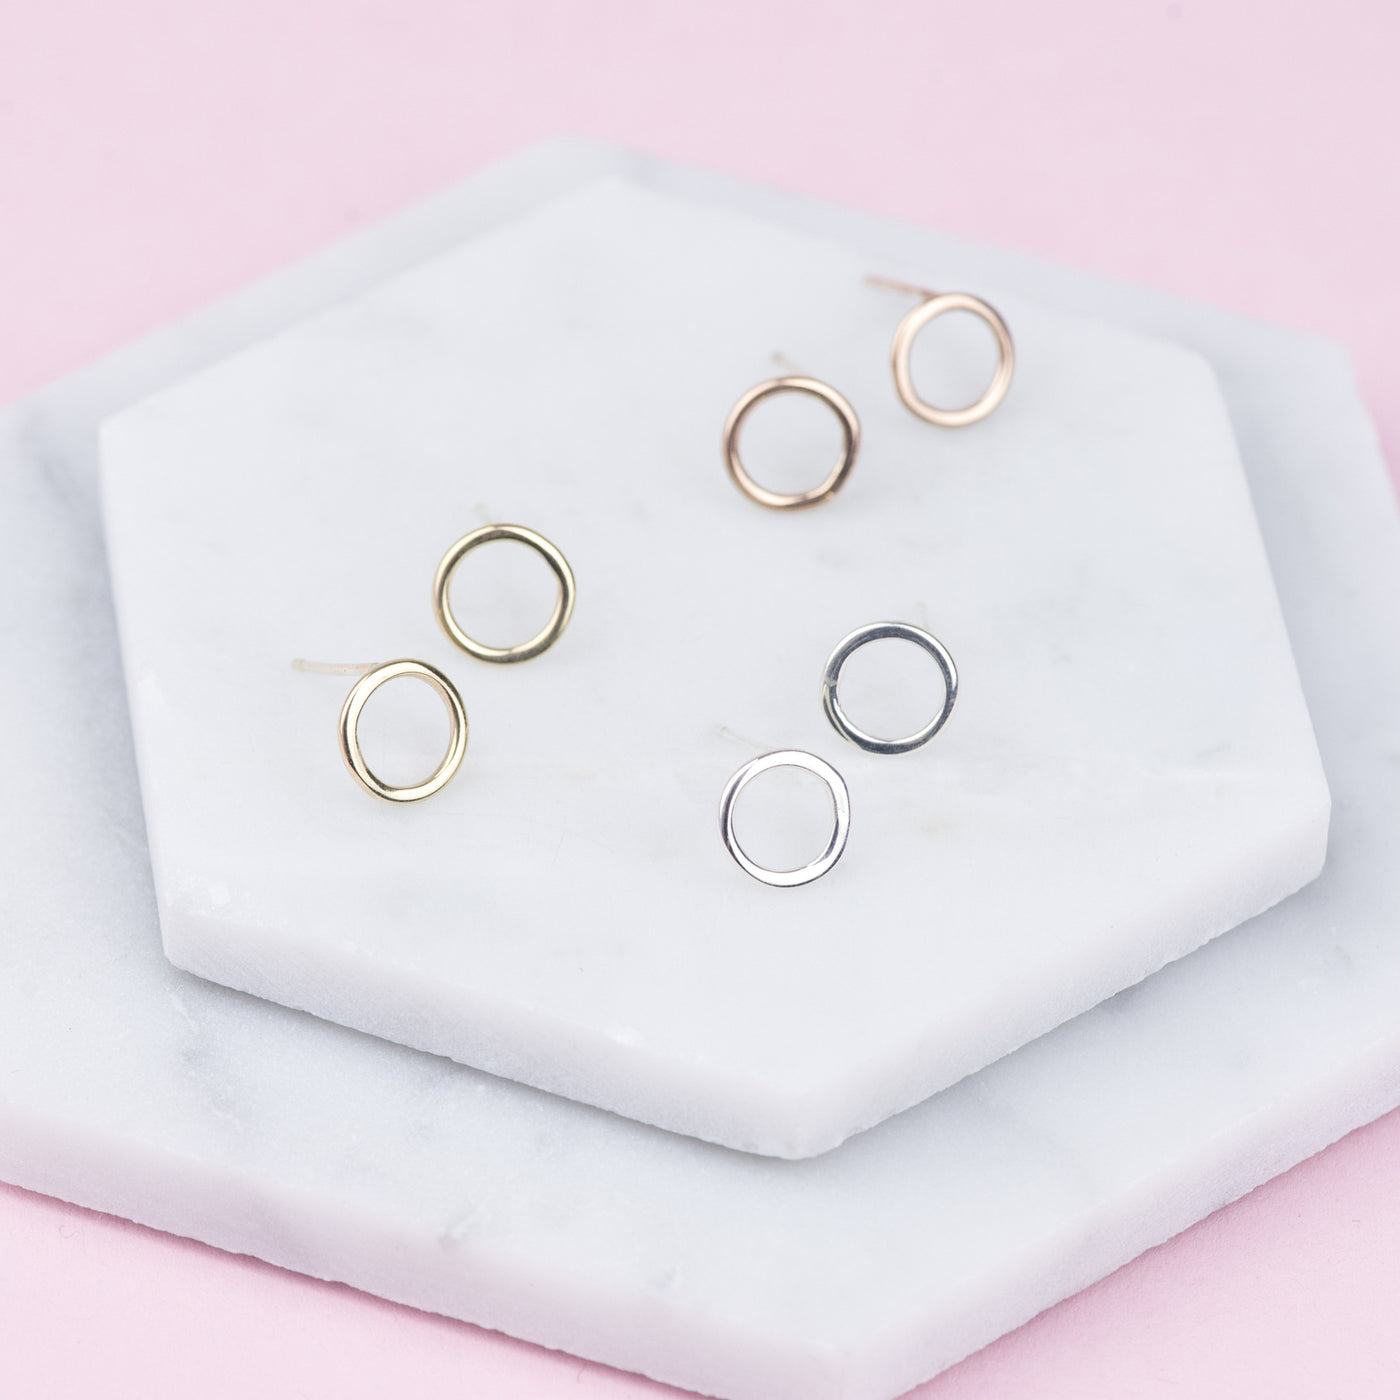 LUCIA - HANDMADE 9 CARAT GOLD HOOP STUD EARRINGS